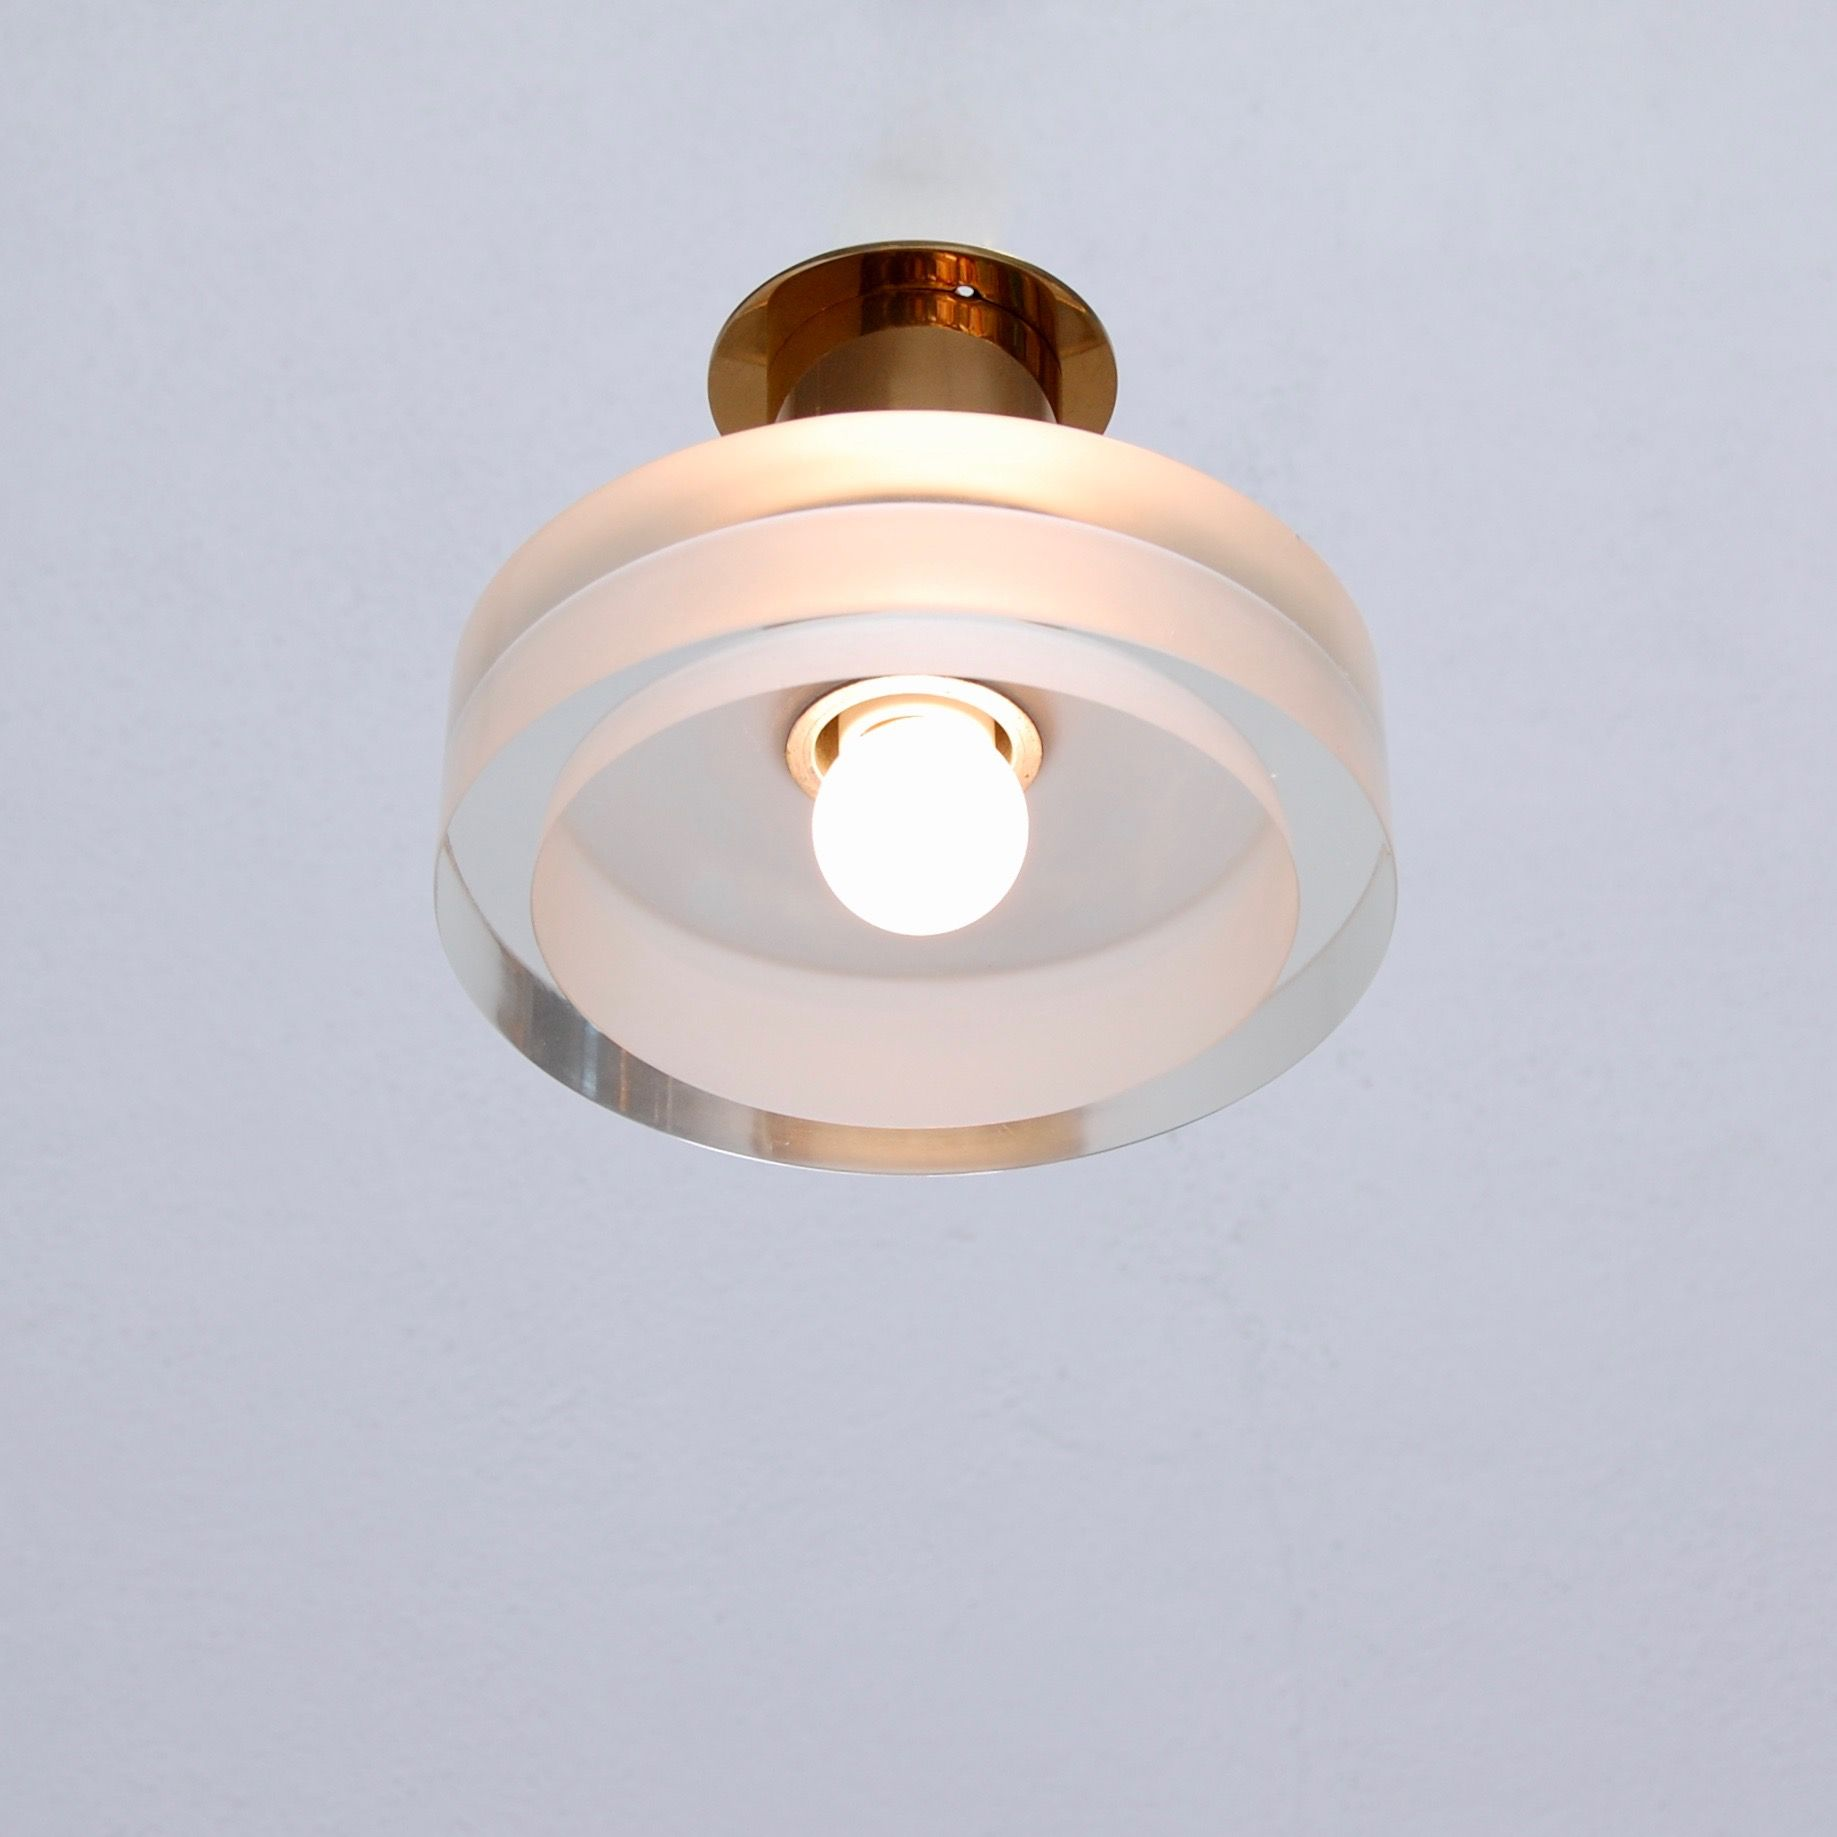 Champagne Seguso Ceiling Fixture In 2020 Ceiling Fixtures Fixtures Ceiling